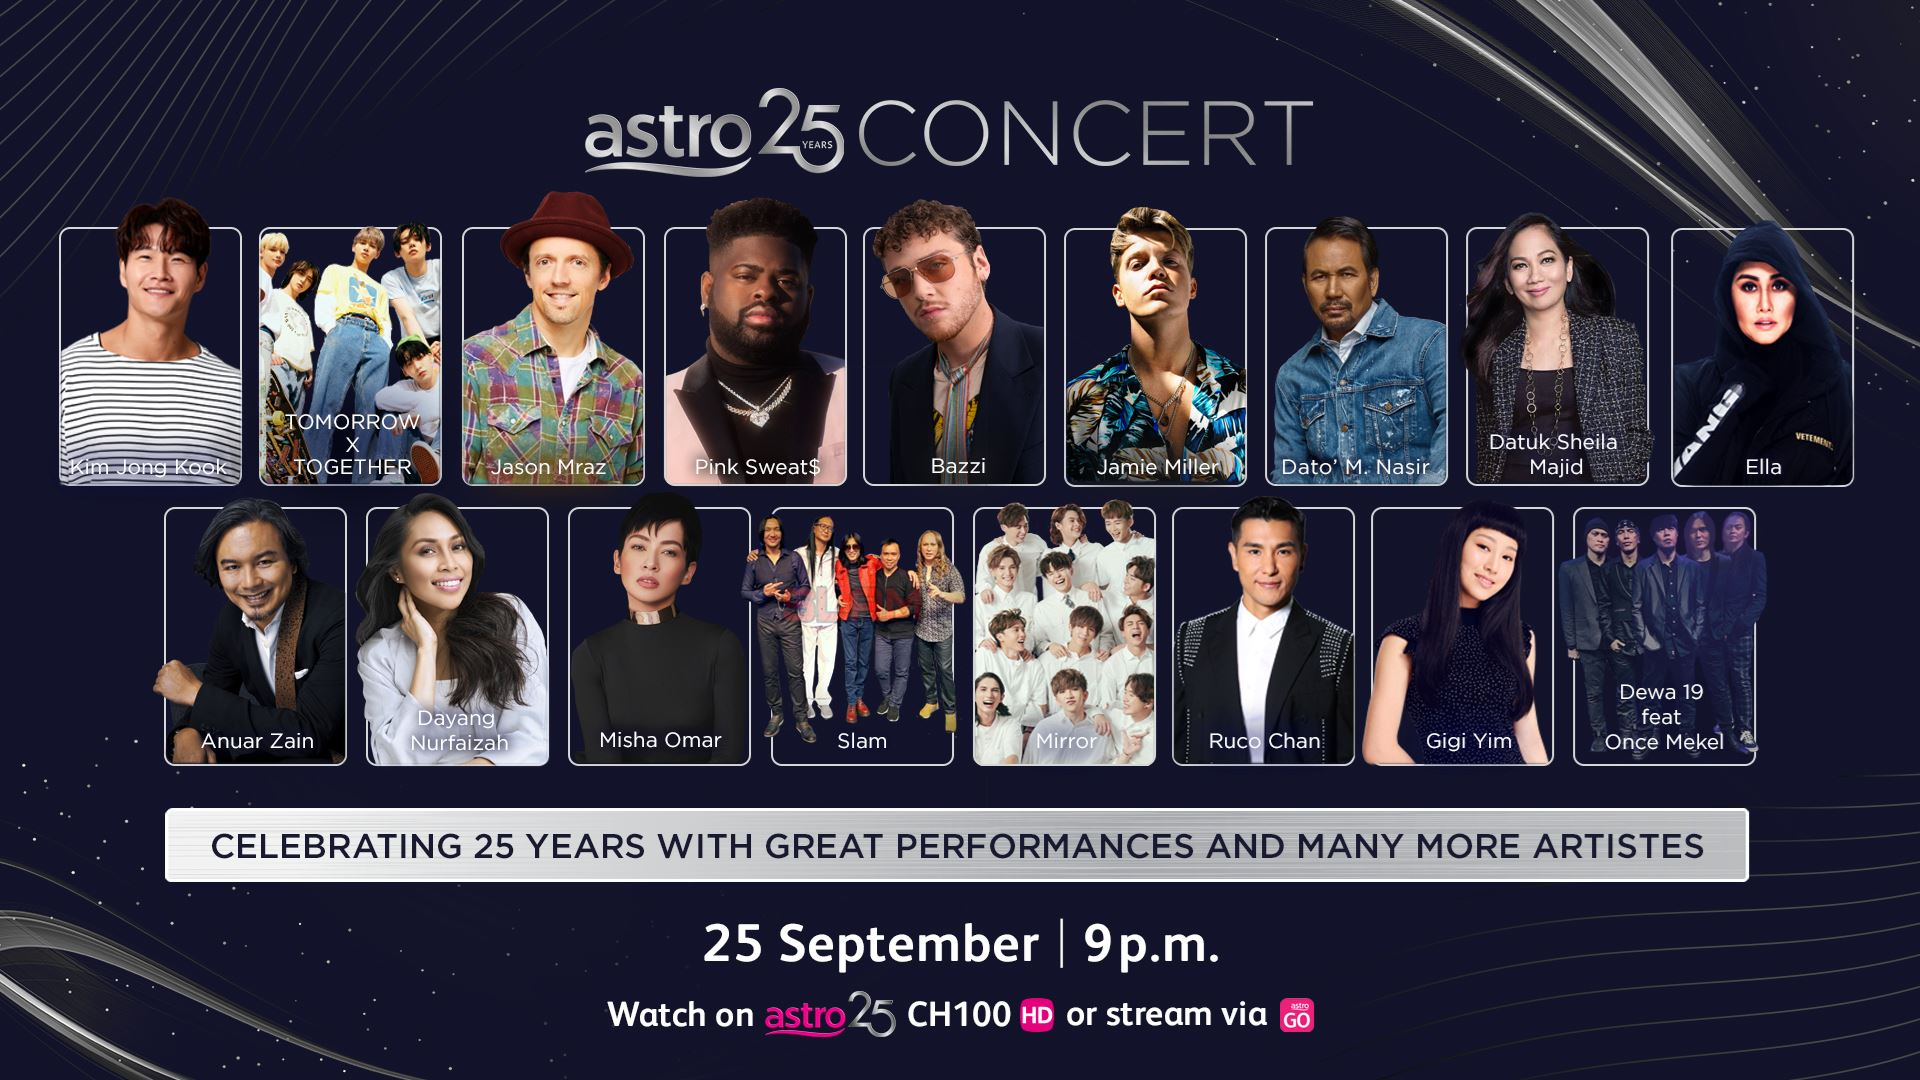 jason mraz, pink sweat$ and bazzi will be performing alongside local celebrities at astro 25 concert!